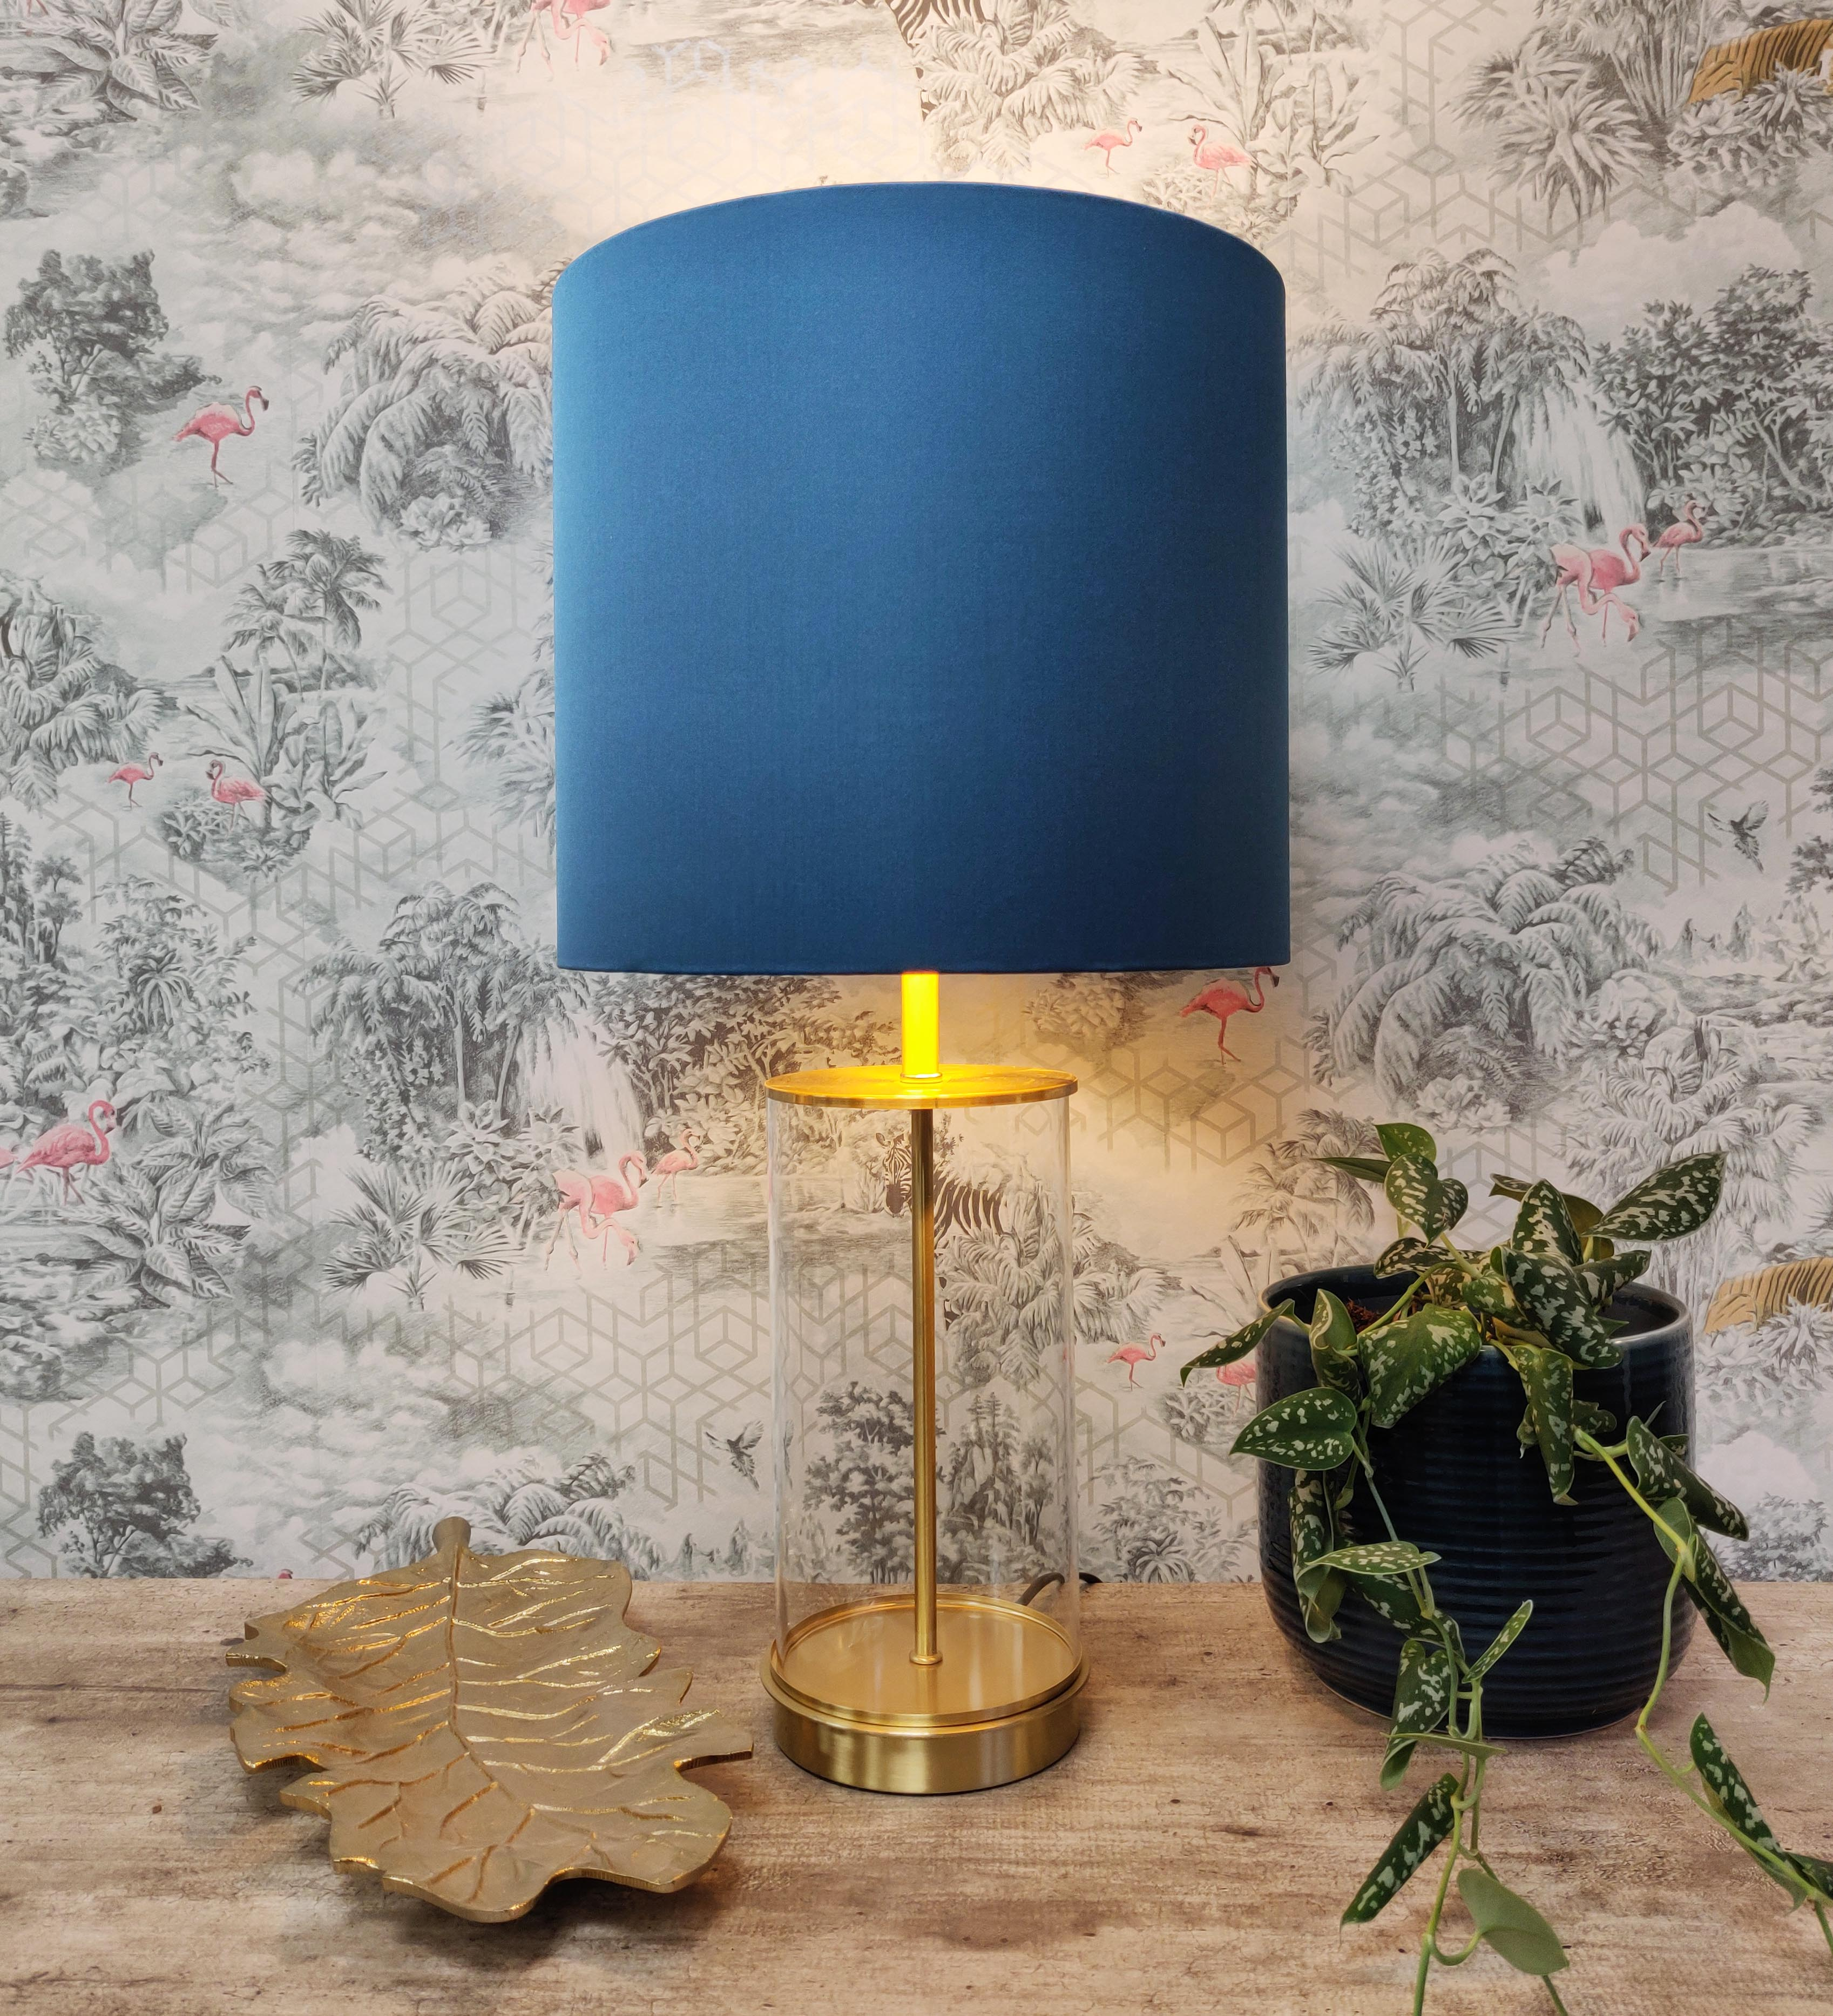 Teal Lampshade in a Satin Fabric